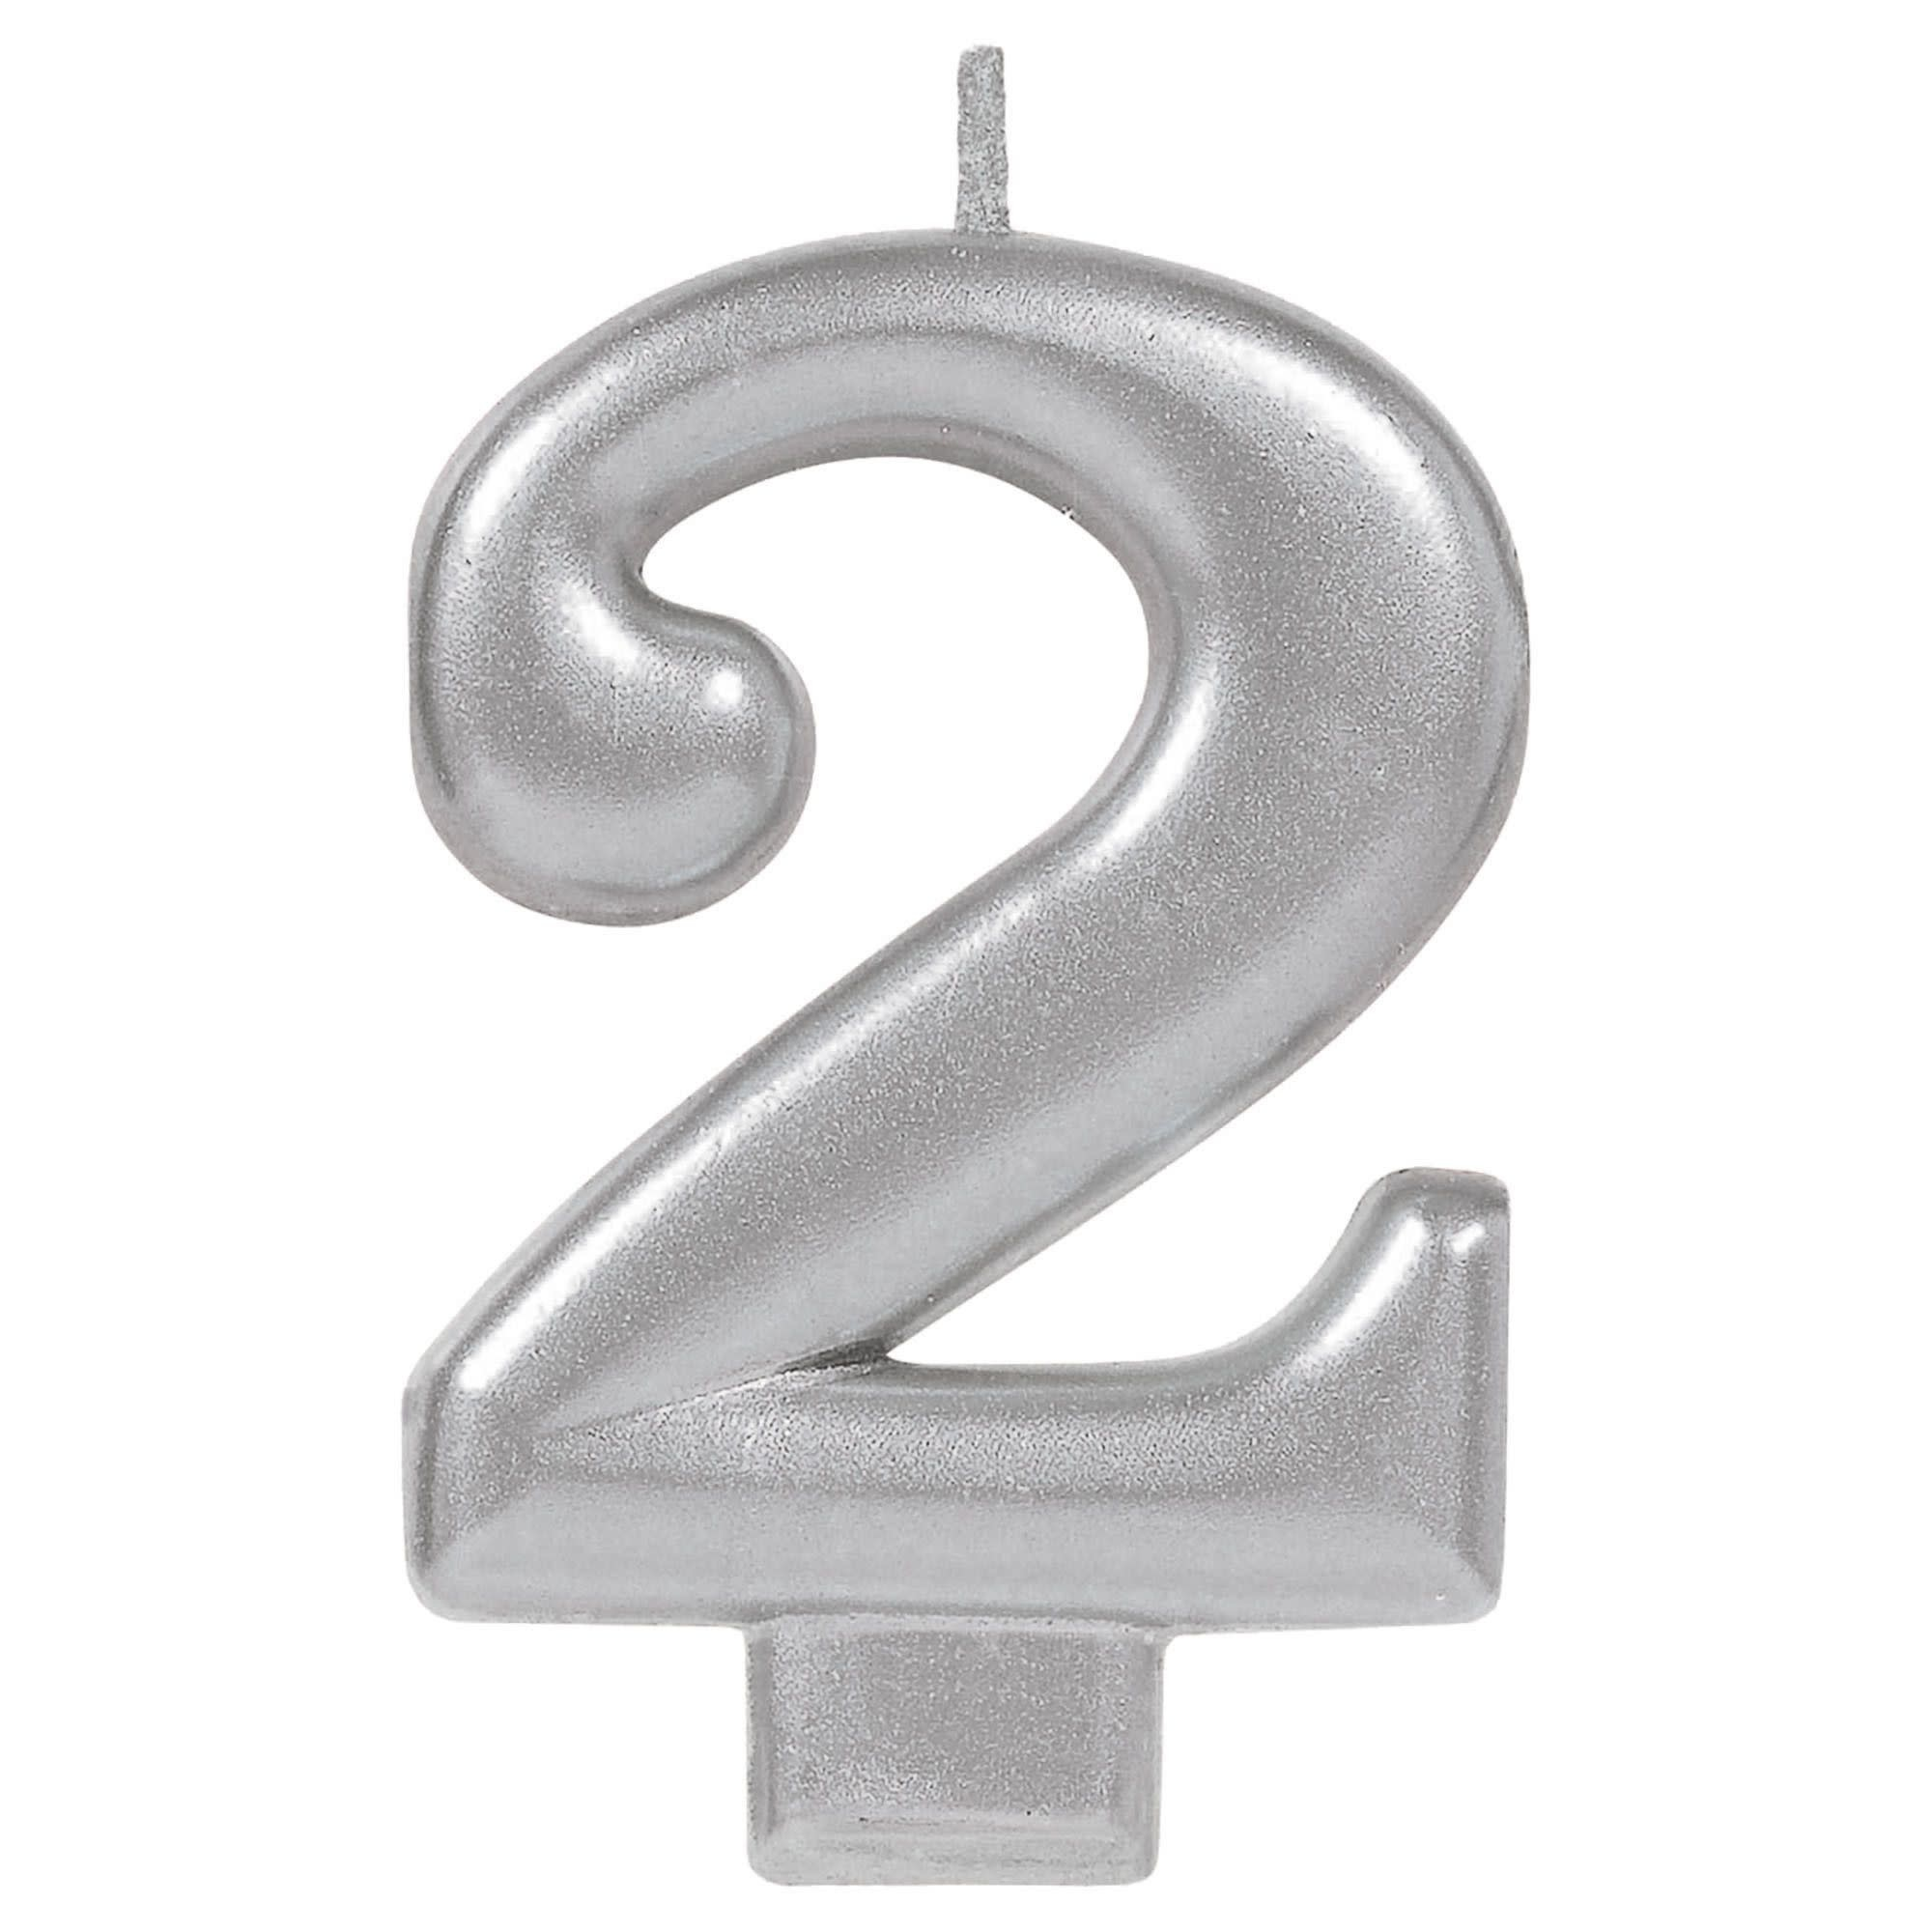 Numeral Metallic Candle #2 - Silver